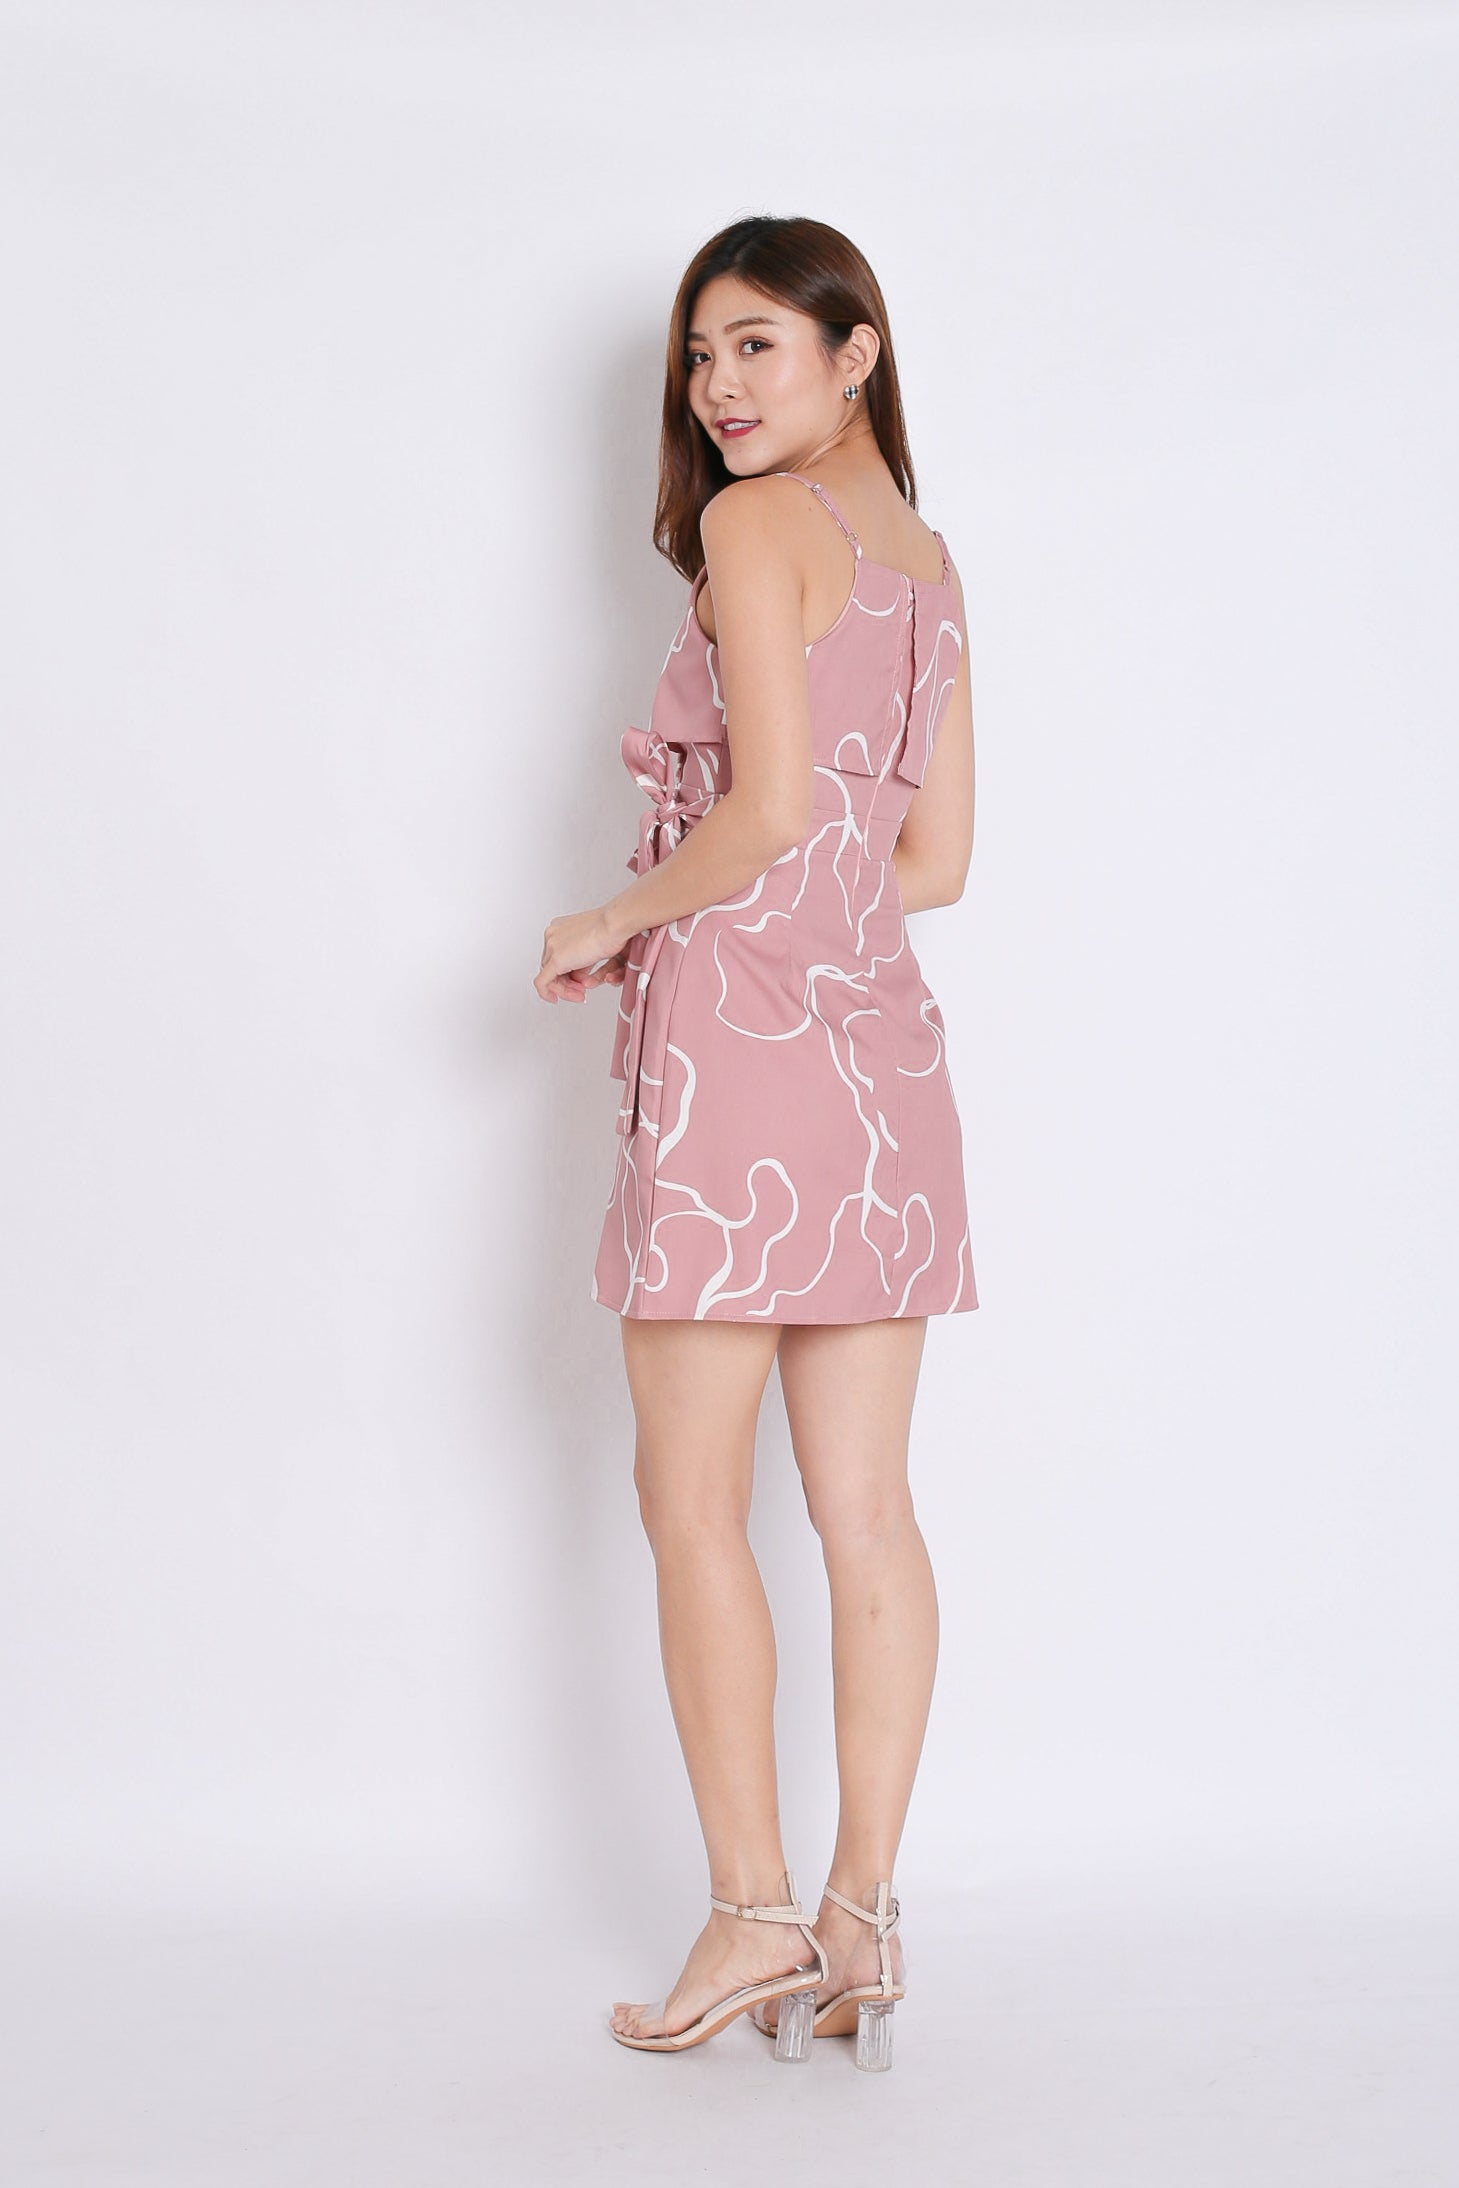 (PREMIUM) OCEANA SWIRL WRAP DRESS IN DUSTY PINK